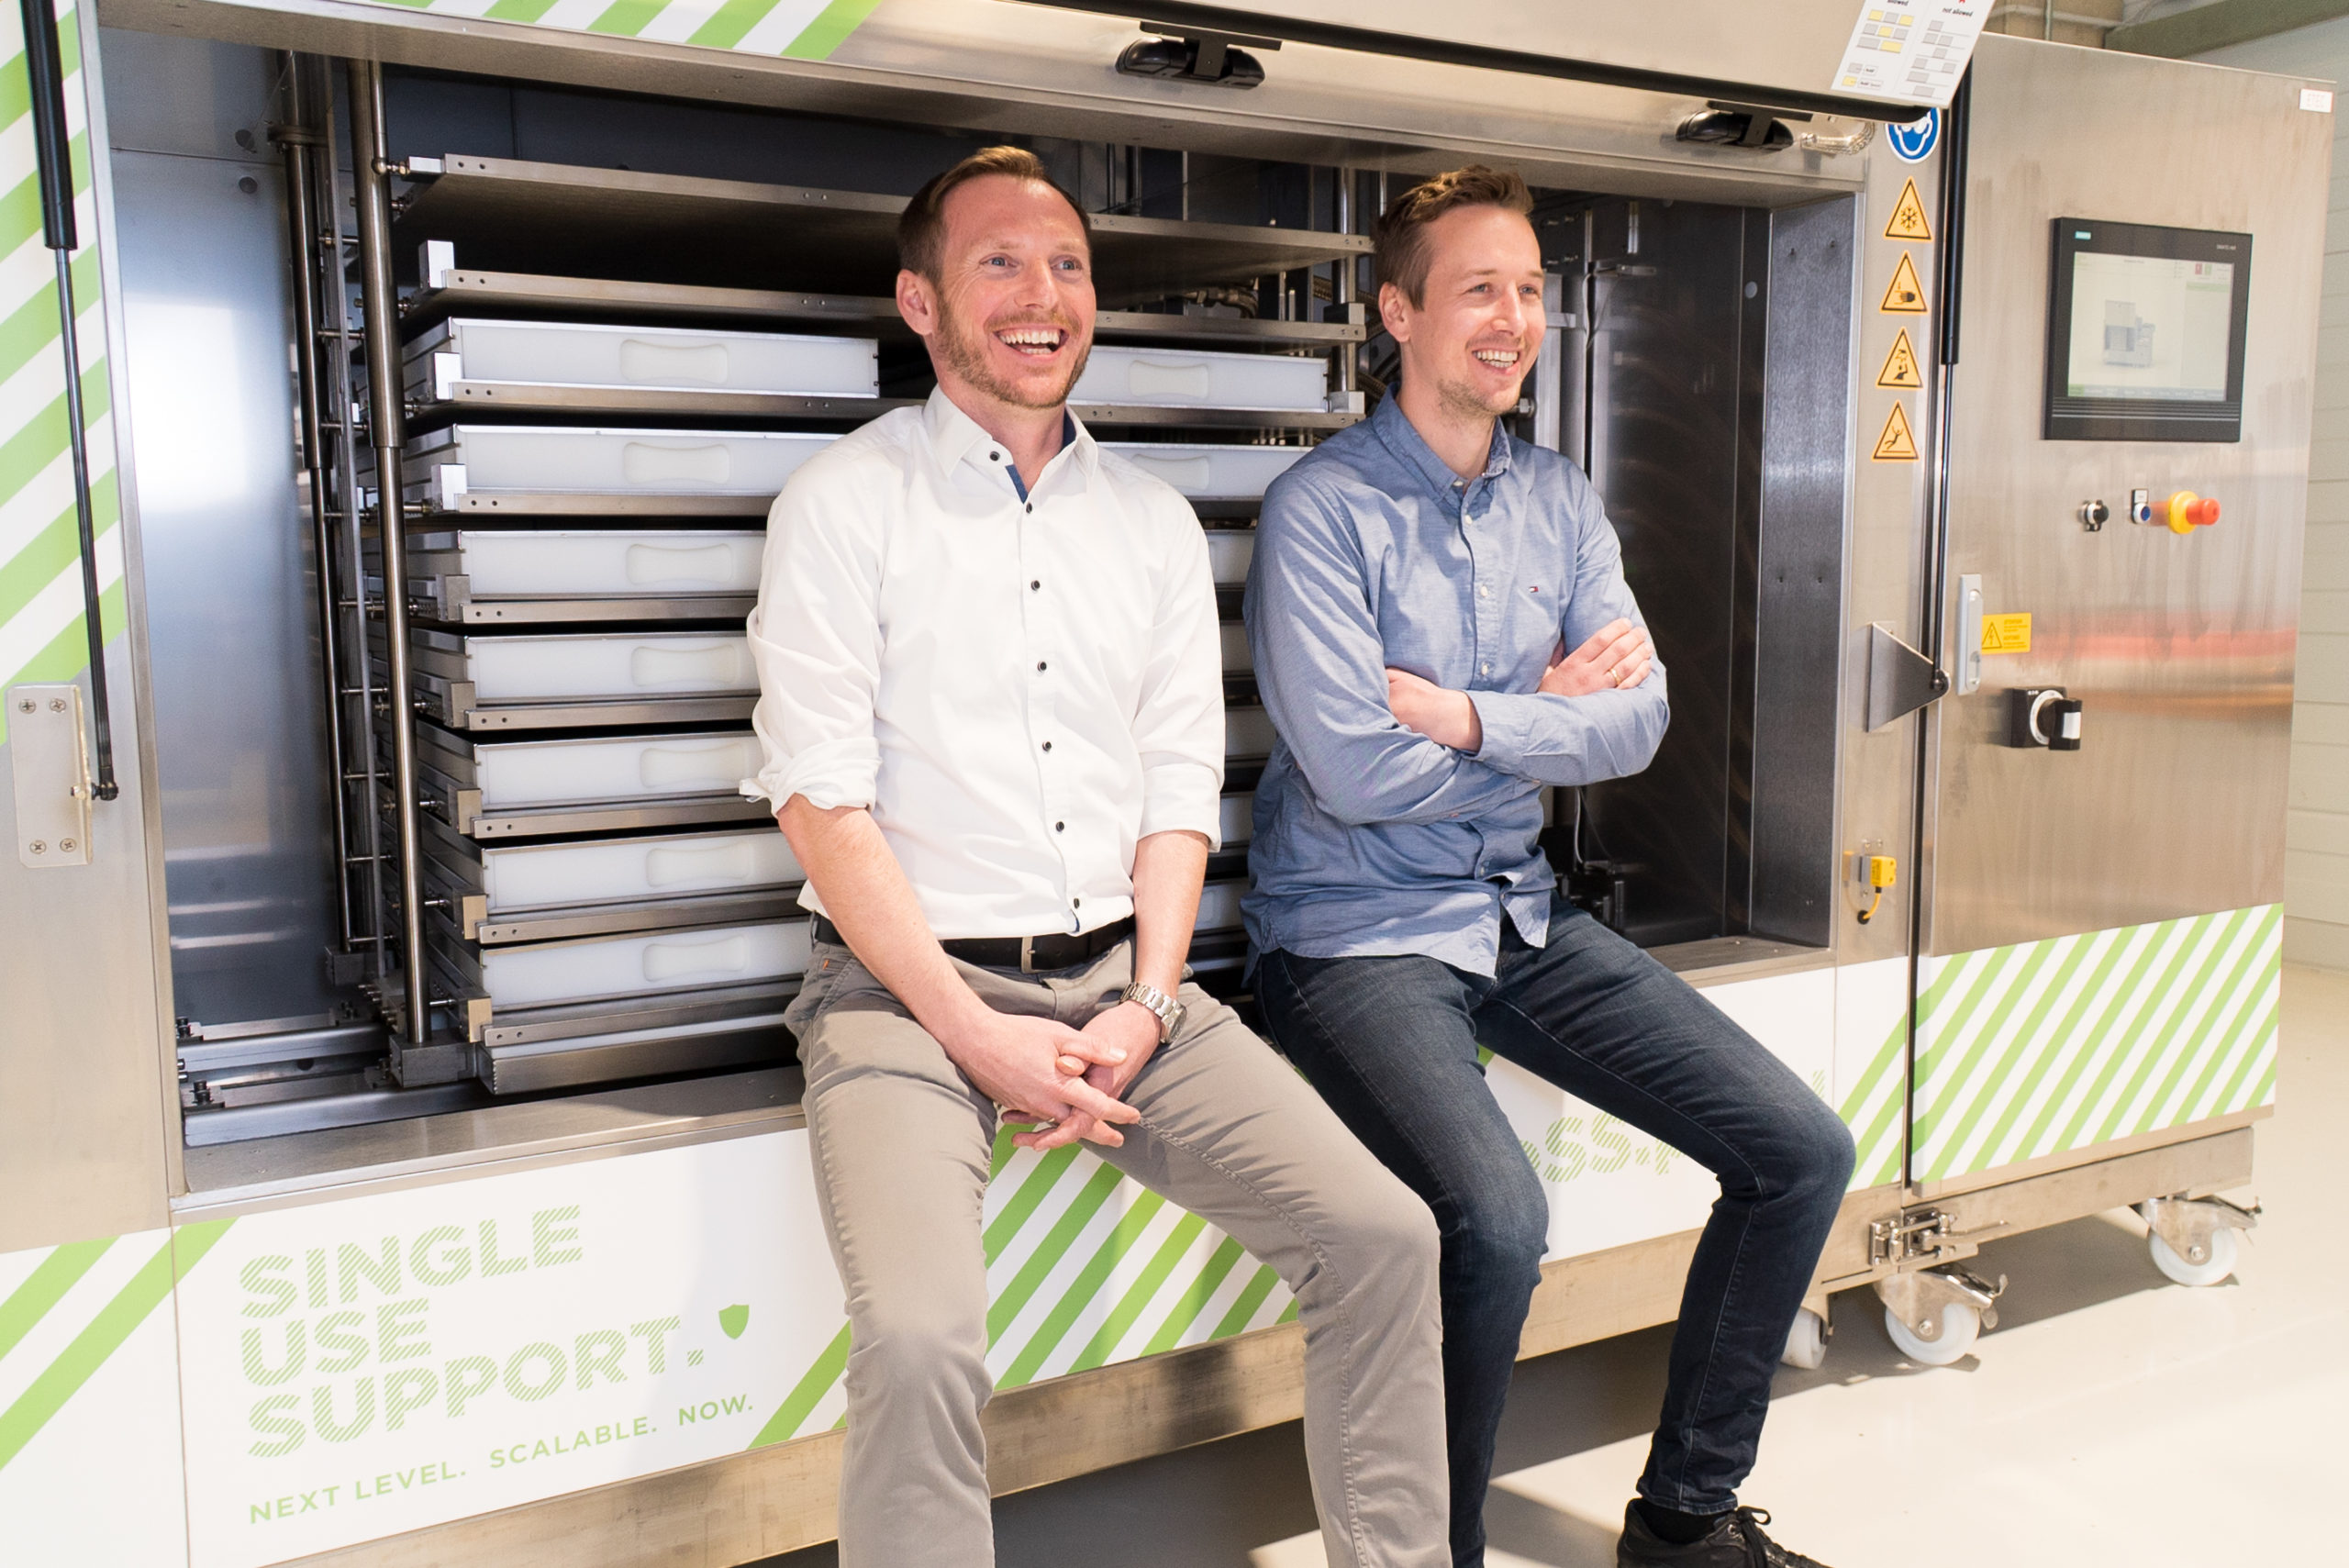 Johannes Kirchmair and Thomas Wurm, die Gründer von Single Use Support. © Single Use Support GmbH